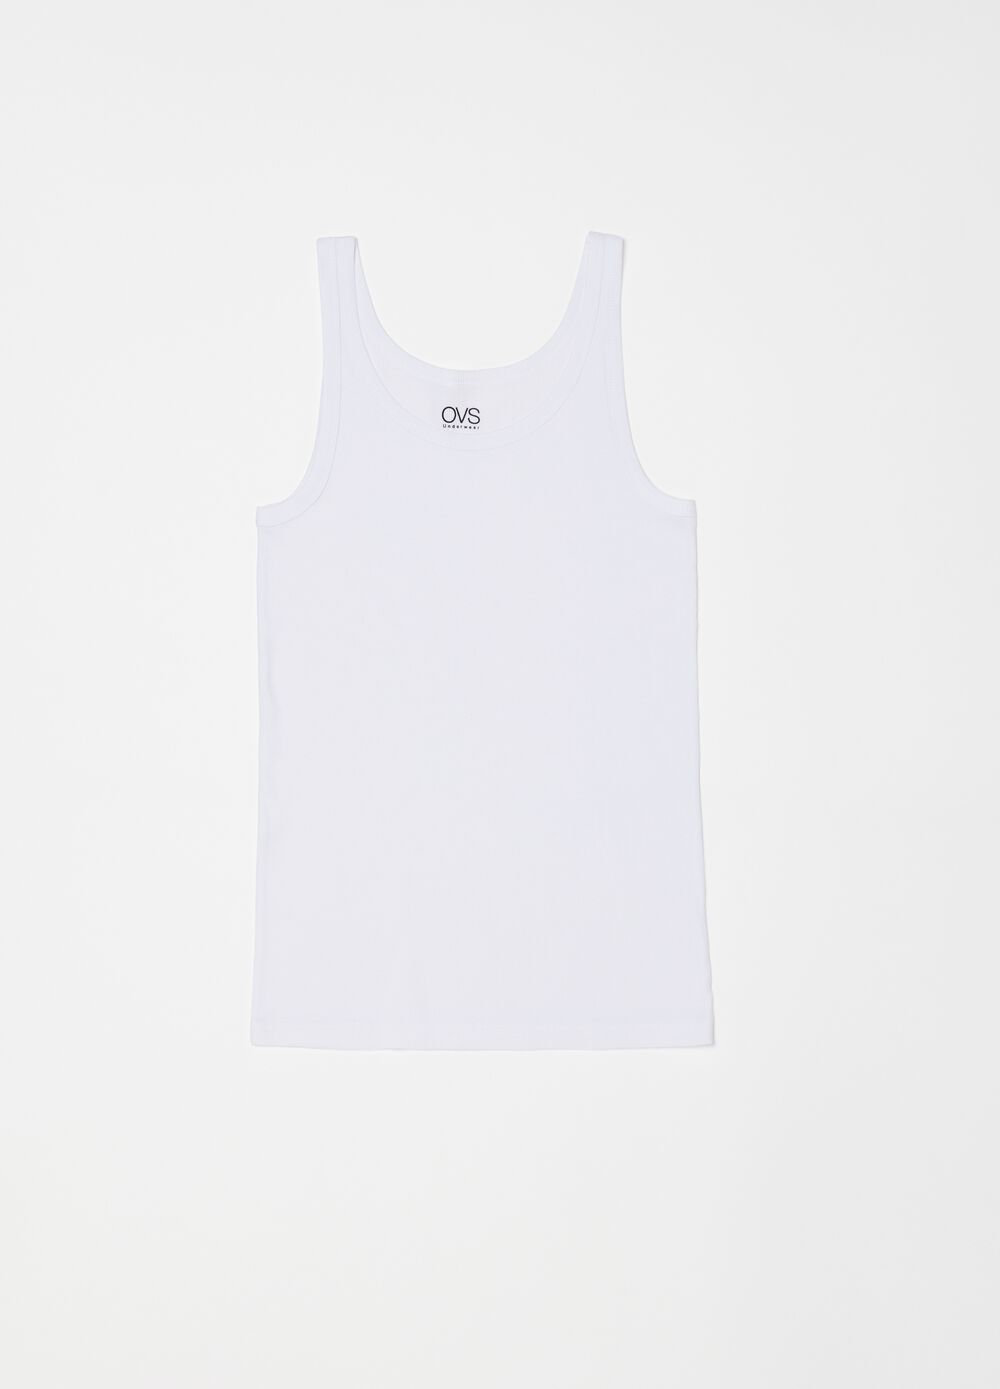 Wide-rib racerback top with narrow shoulder straps